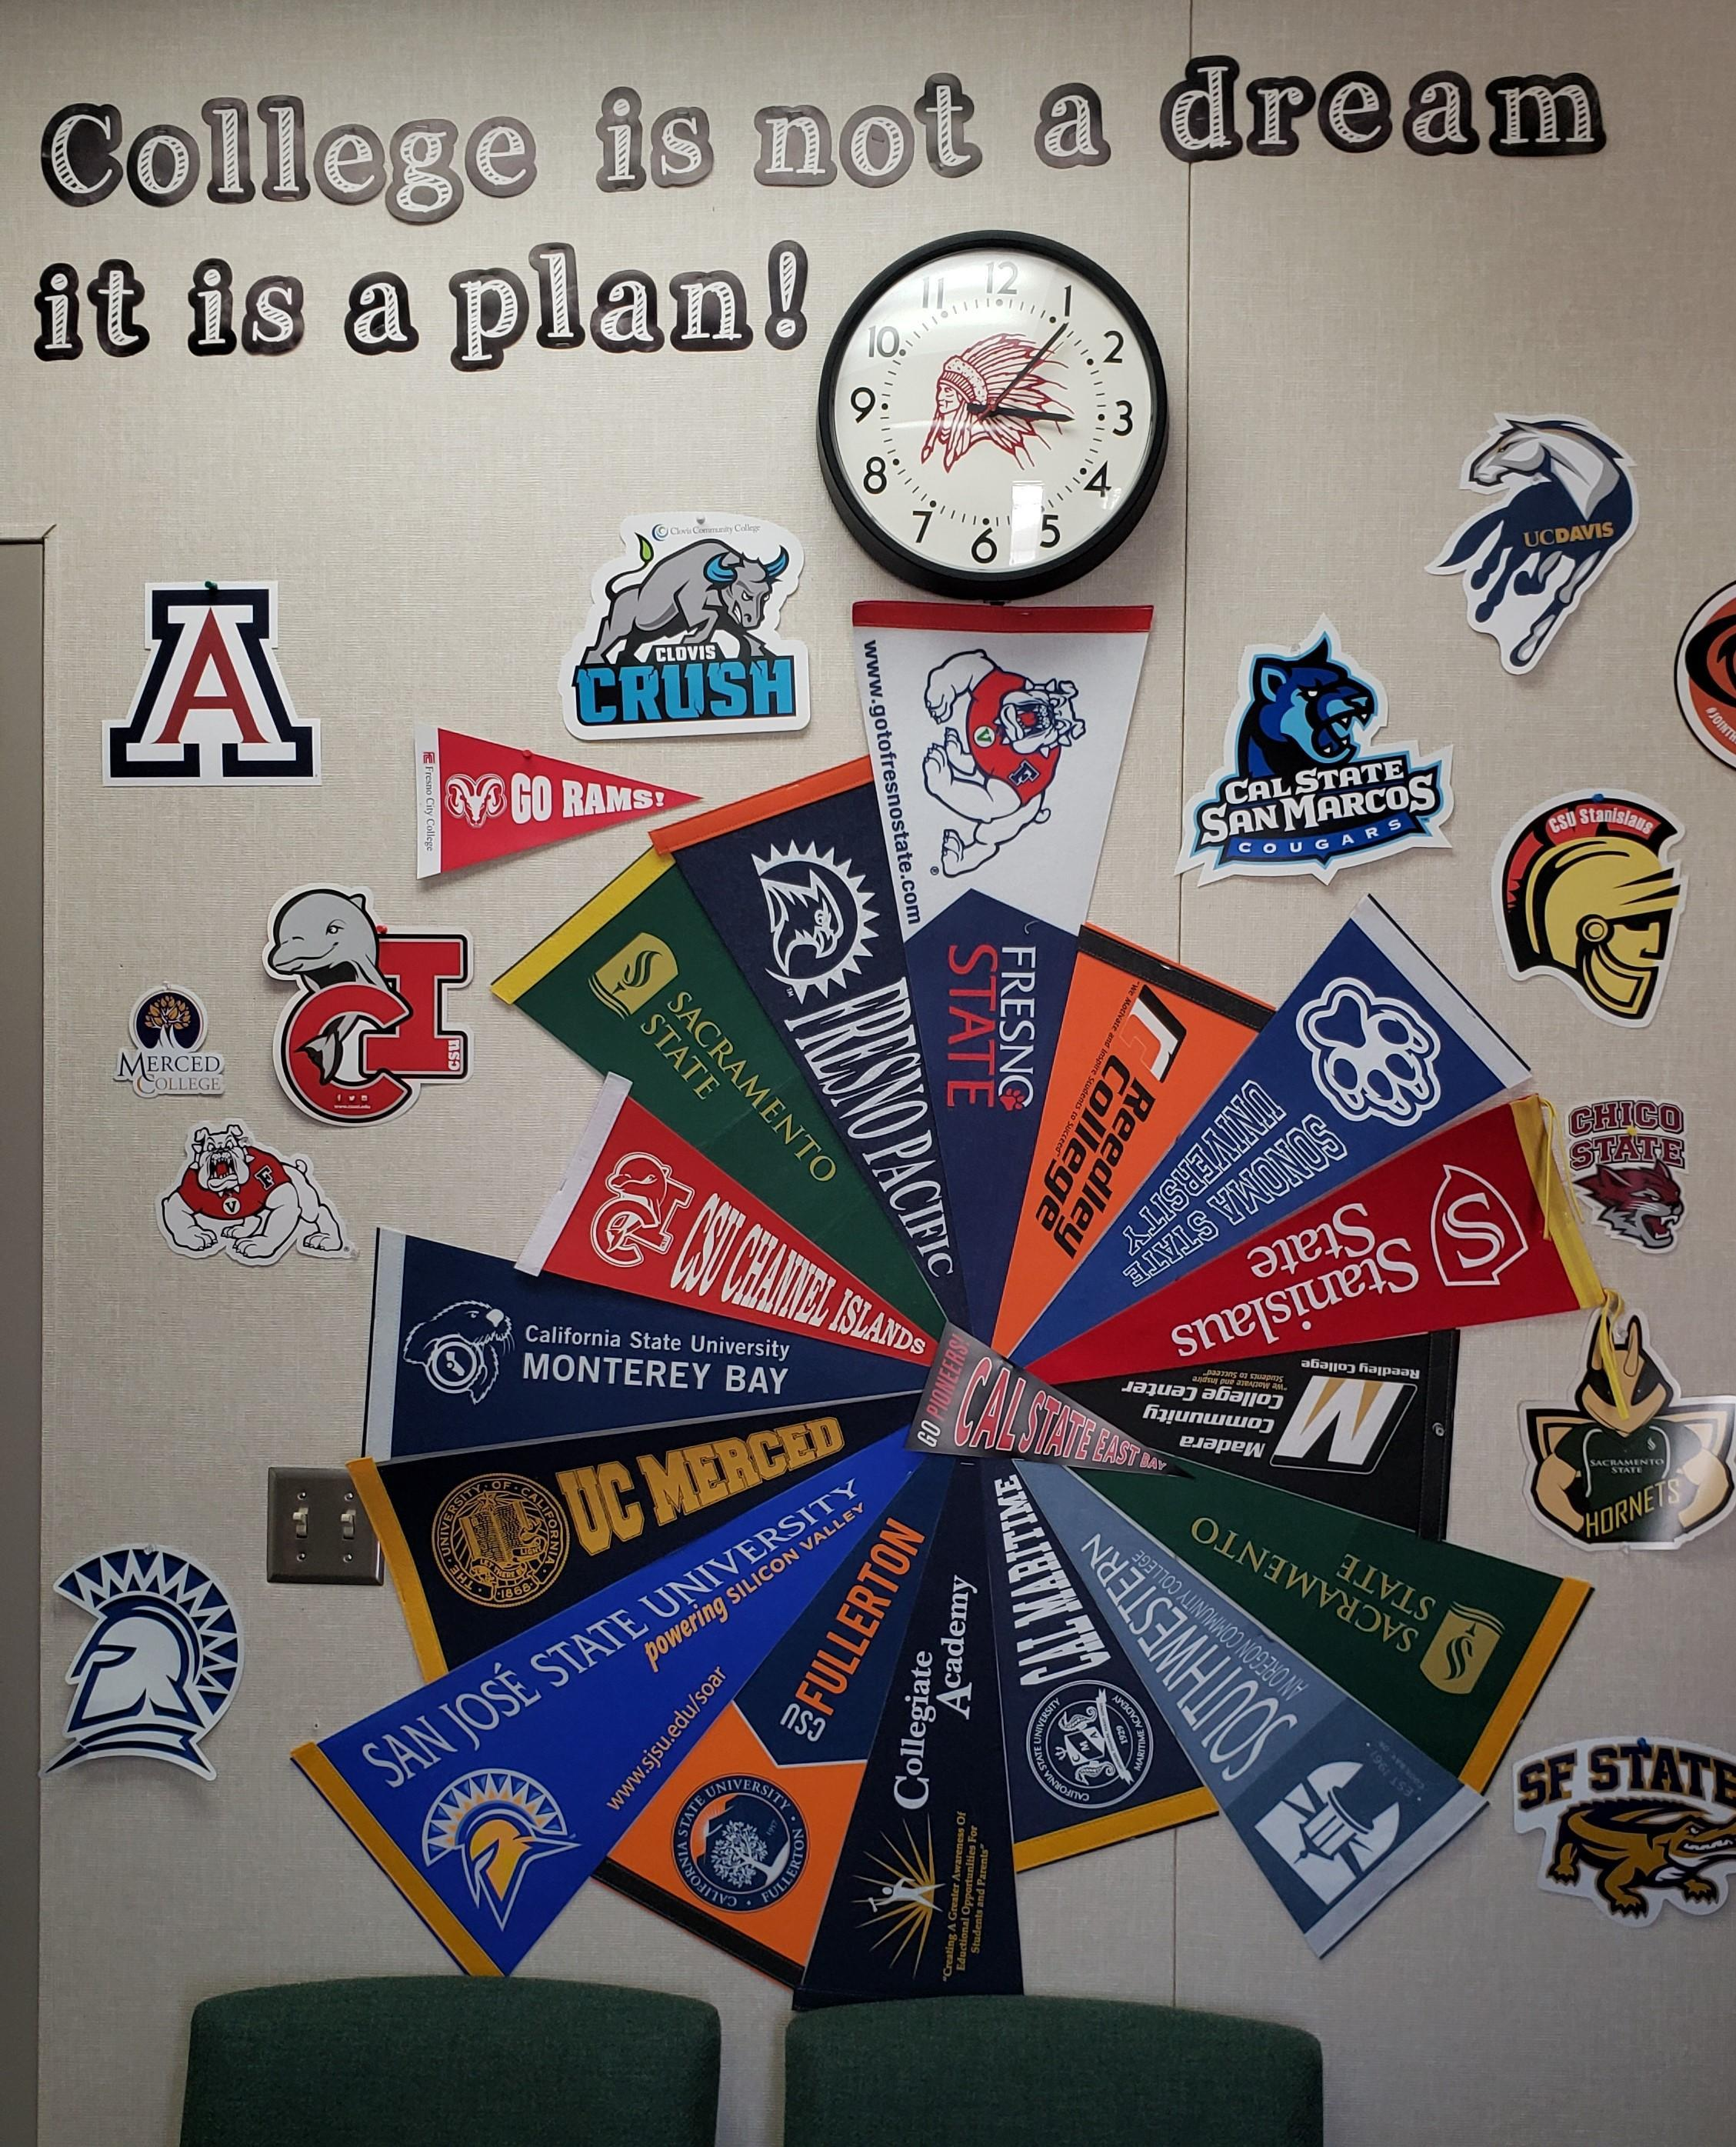 a wall of college logos and banners